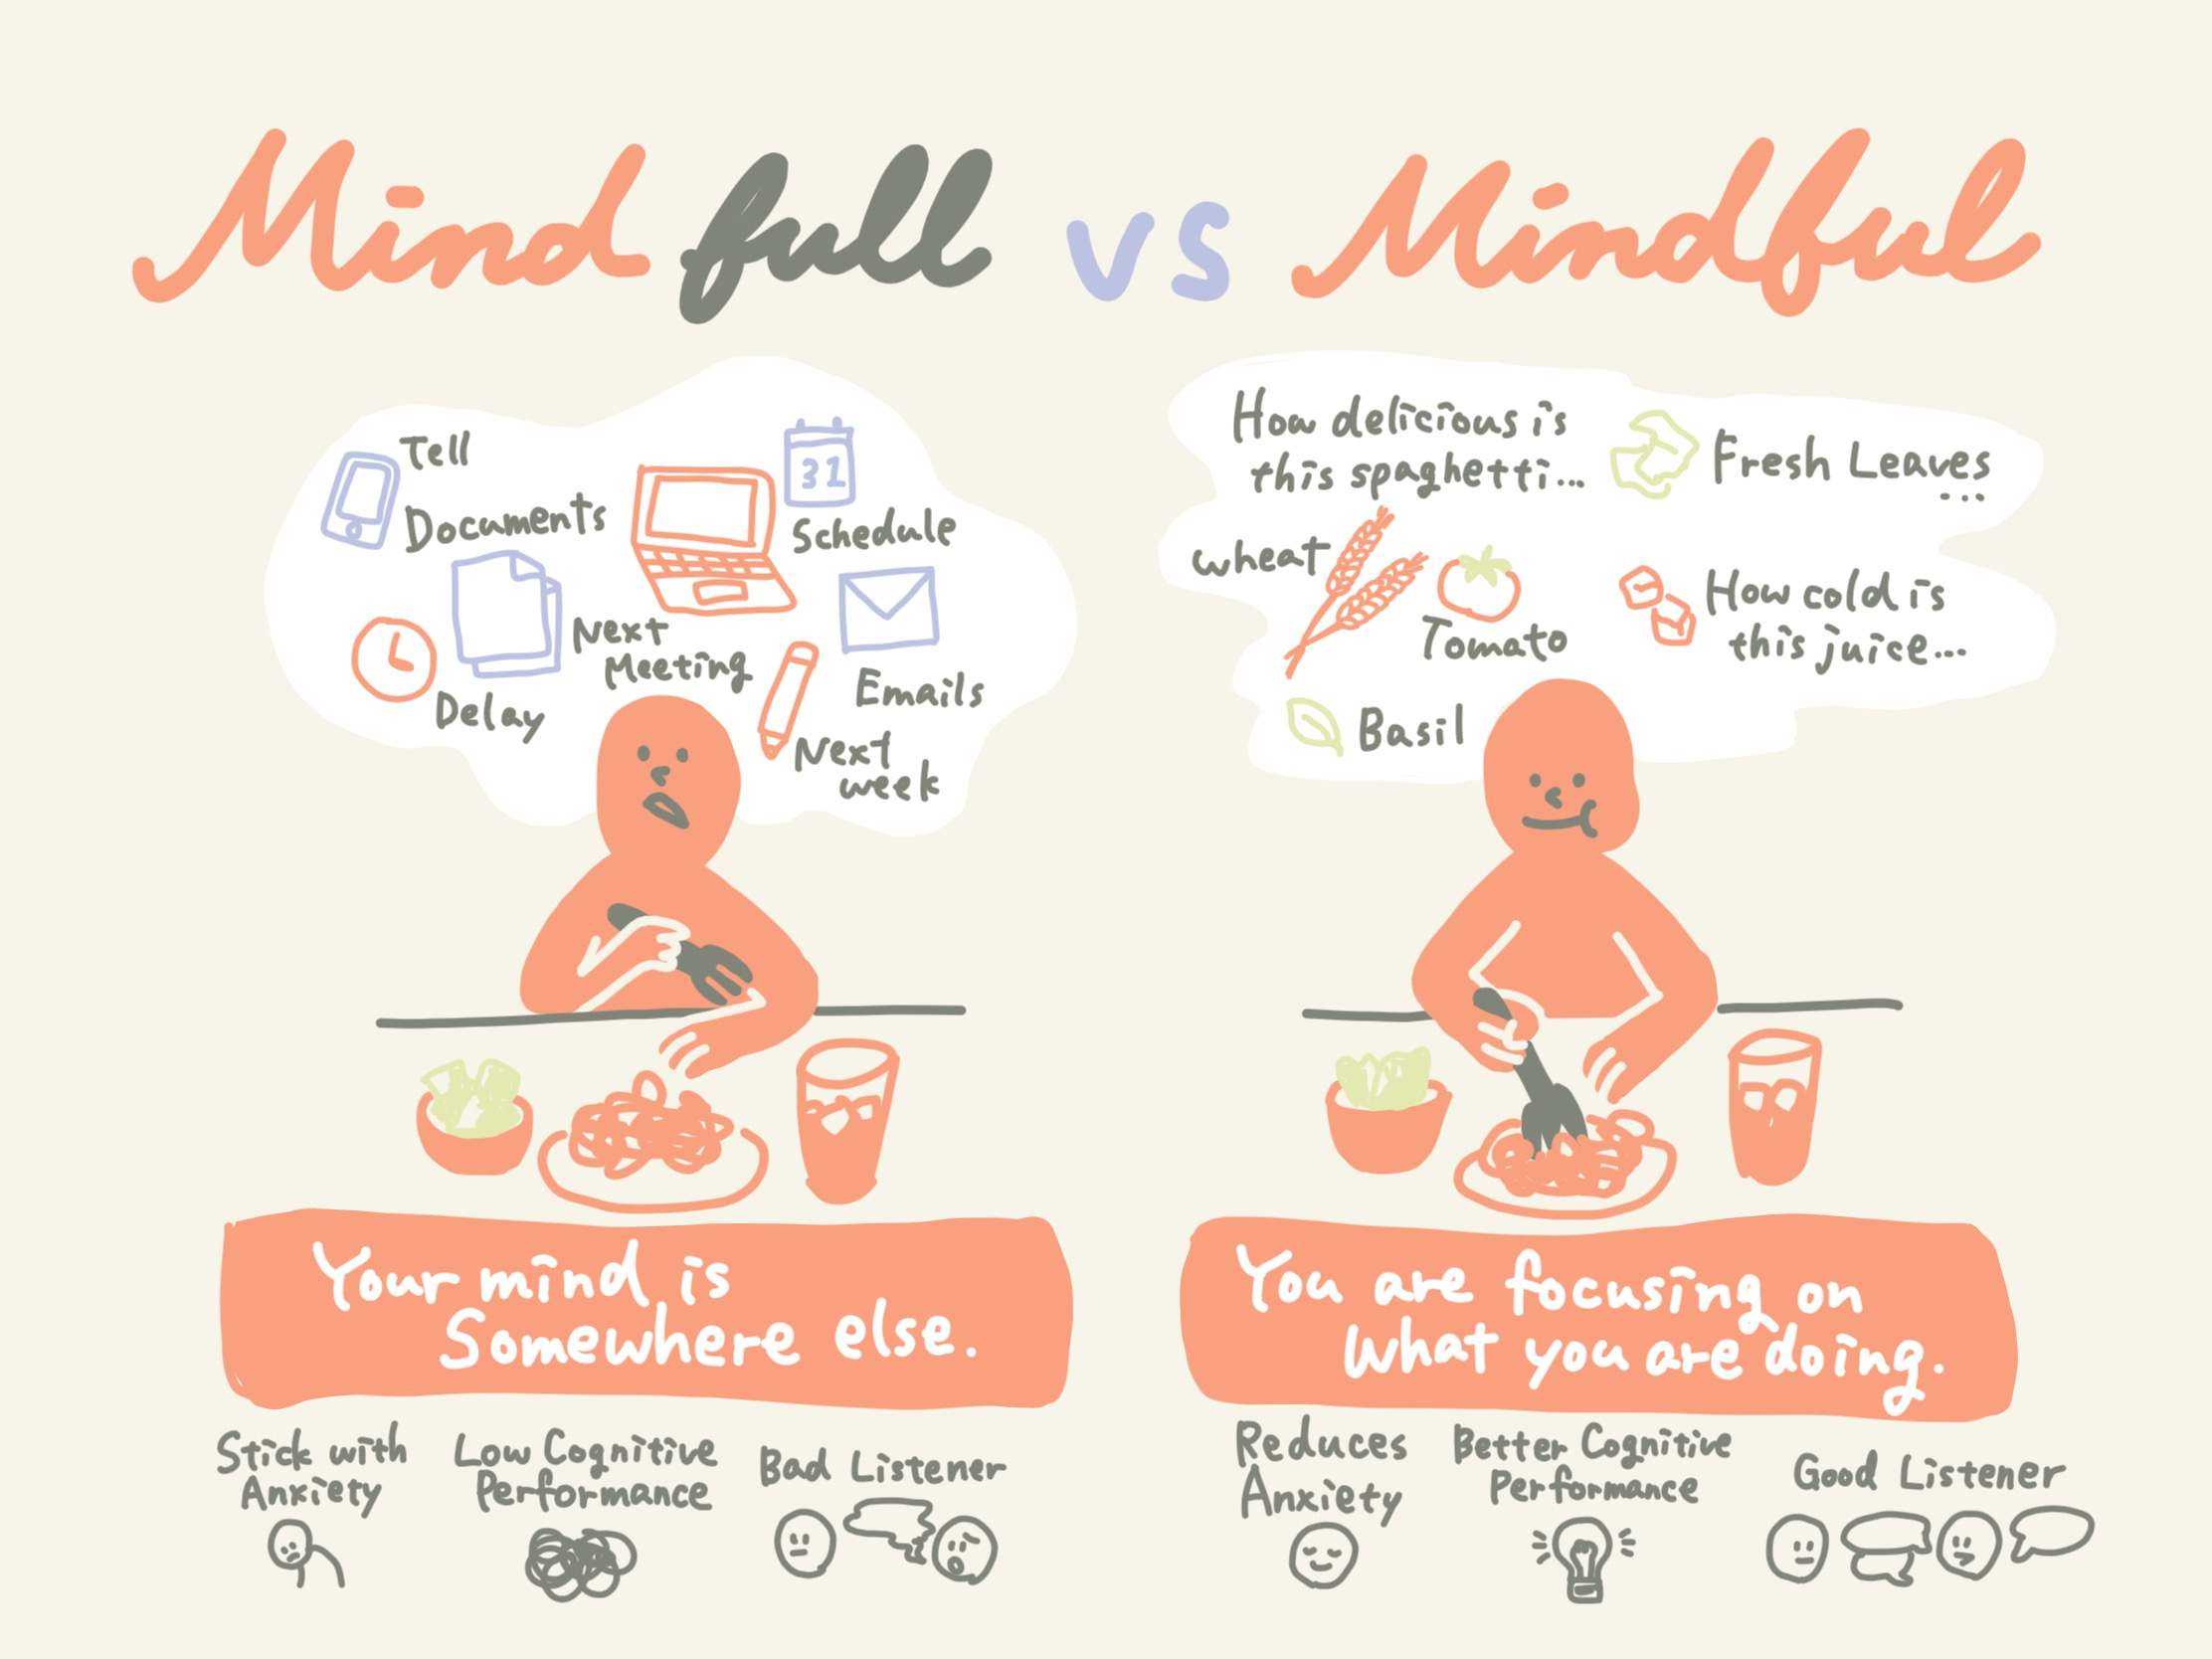 Mind full vs Mindful Image